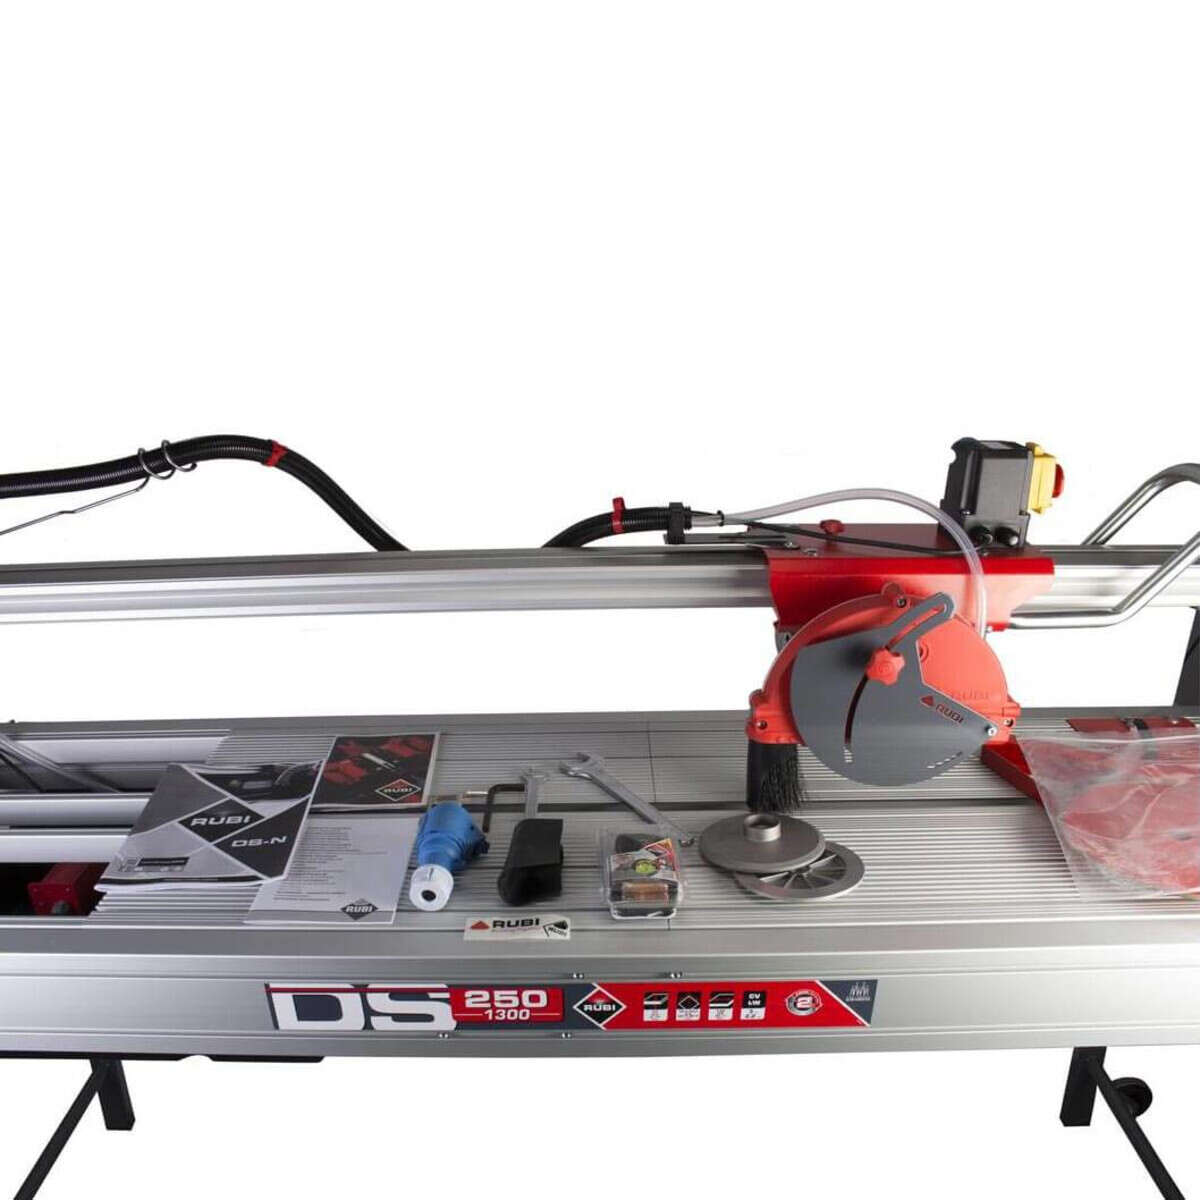 Rubi DS-250-N Stone Saw Accessories